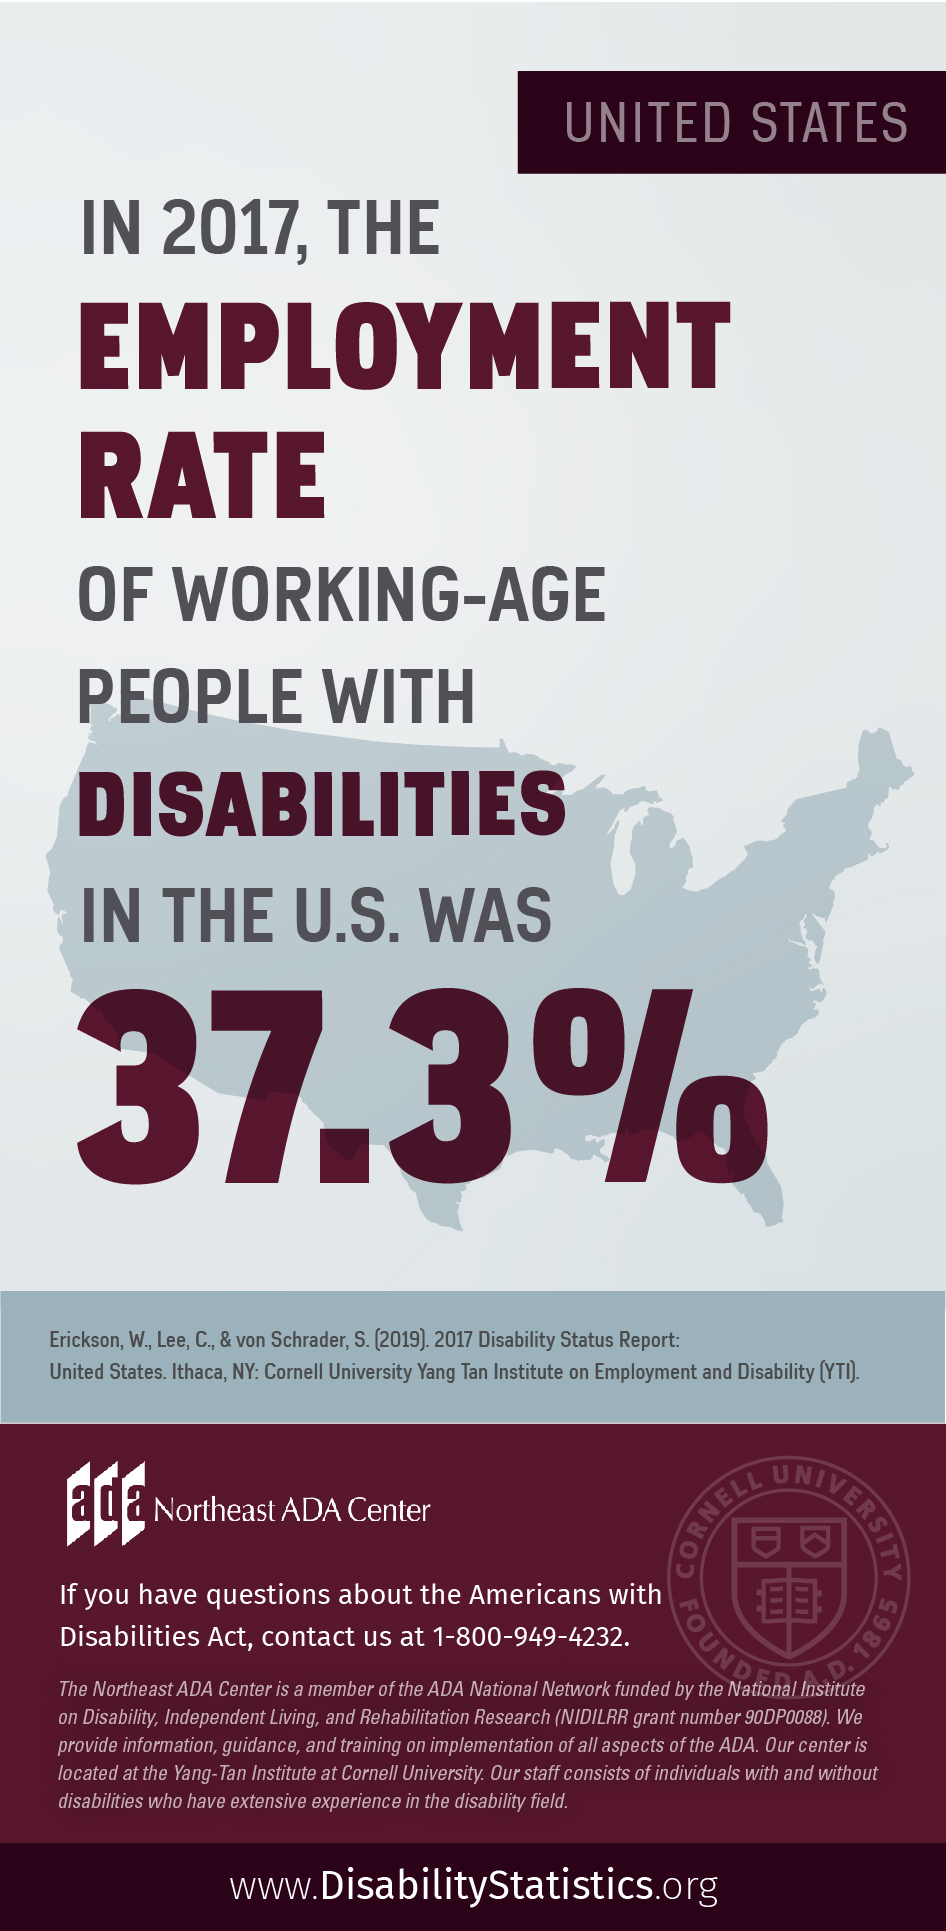 Infographic featuring text on top of an outline of a U.S. map: In 2017, the Employment Rate of working-age people with disabilities in the U.S. was 37.3% Source: Erickson, W., Lee, C., & von Schrader, S. (2019). 2017 Disability Status Report: United States. Ithaca, NY: Cornell University Yang-Tan Institute on Employment and Disability (YTI). If you have questions about the Americans with Disabilities Act, contact the Northeast ADA Center at 1-800-949-4232.